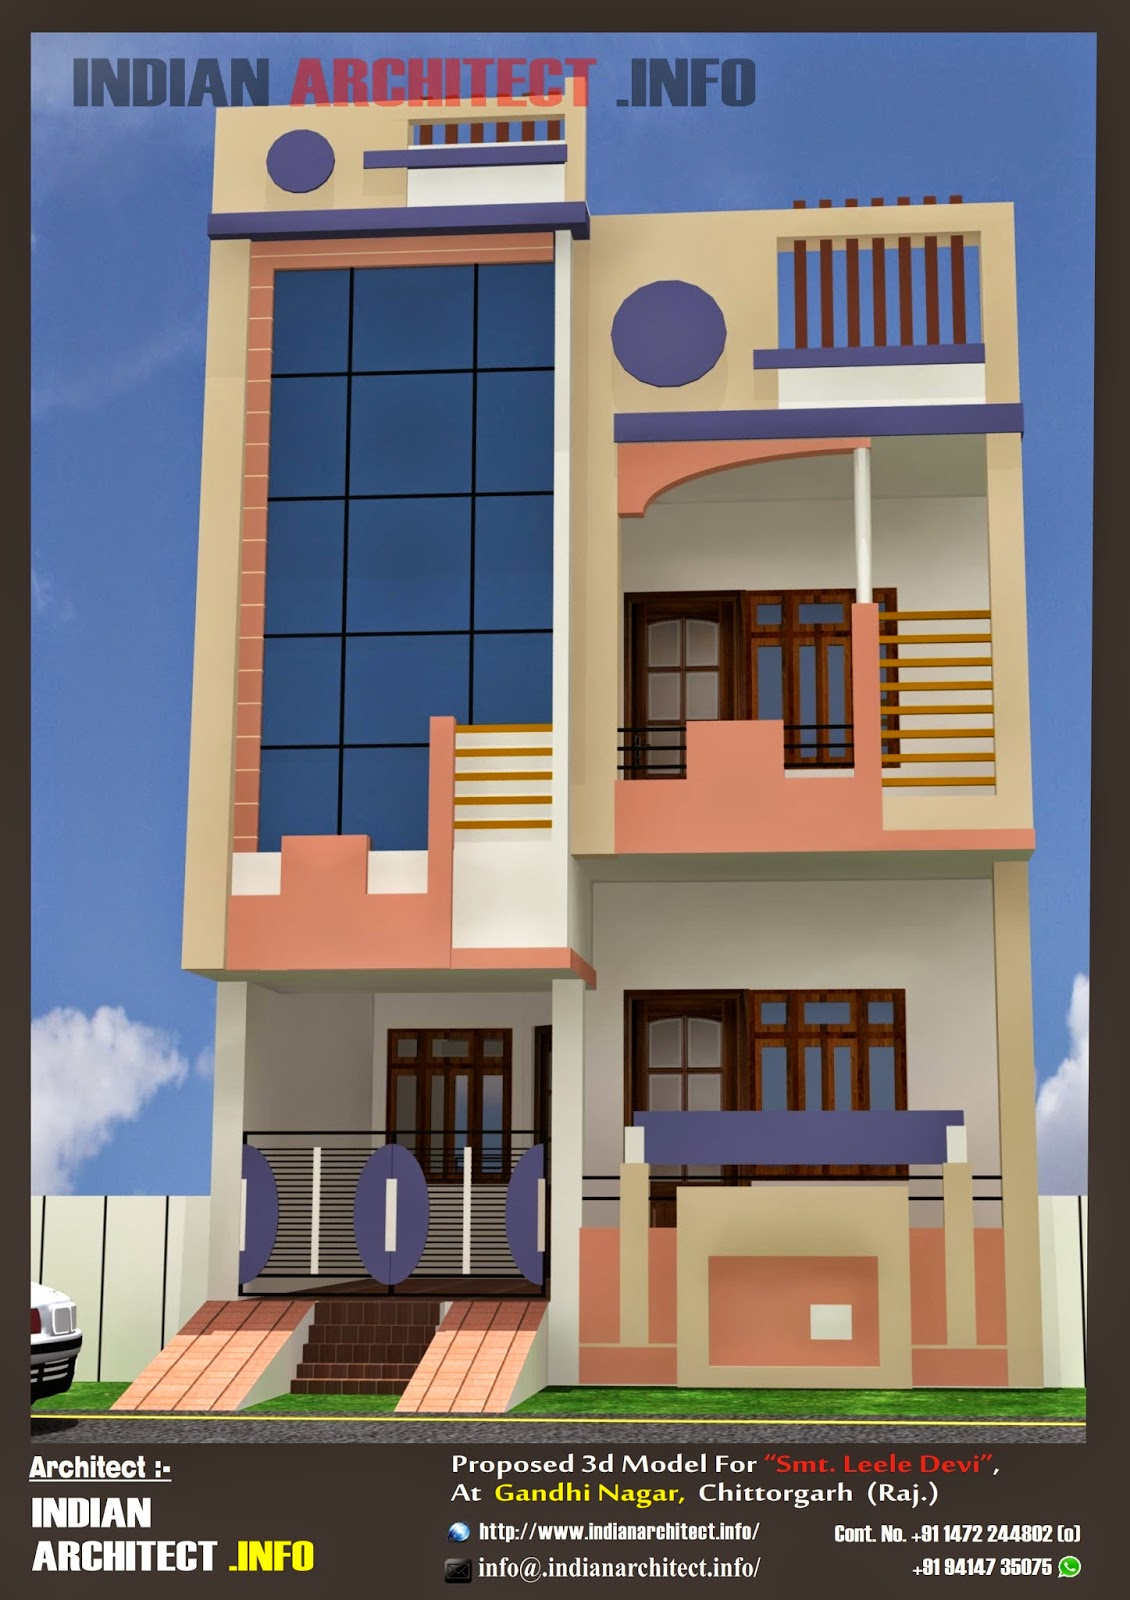 Smt leela devi house 20 x 50 1000 sqft floor plan and 3d